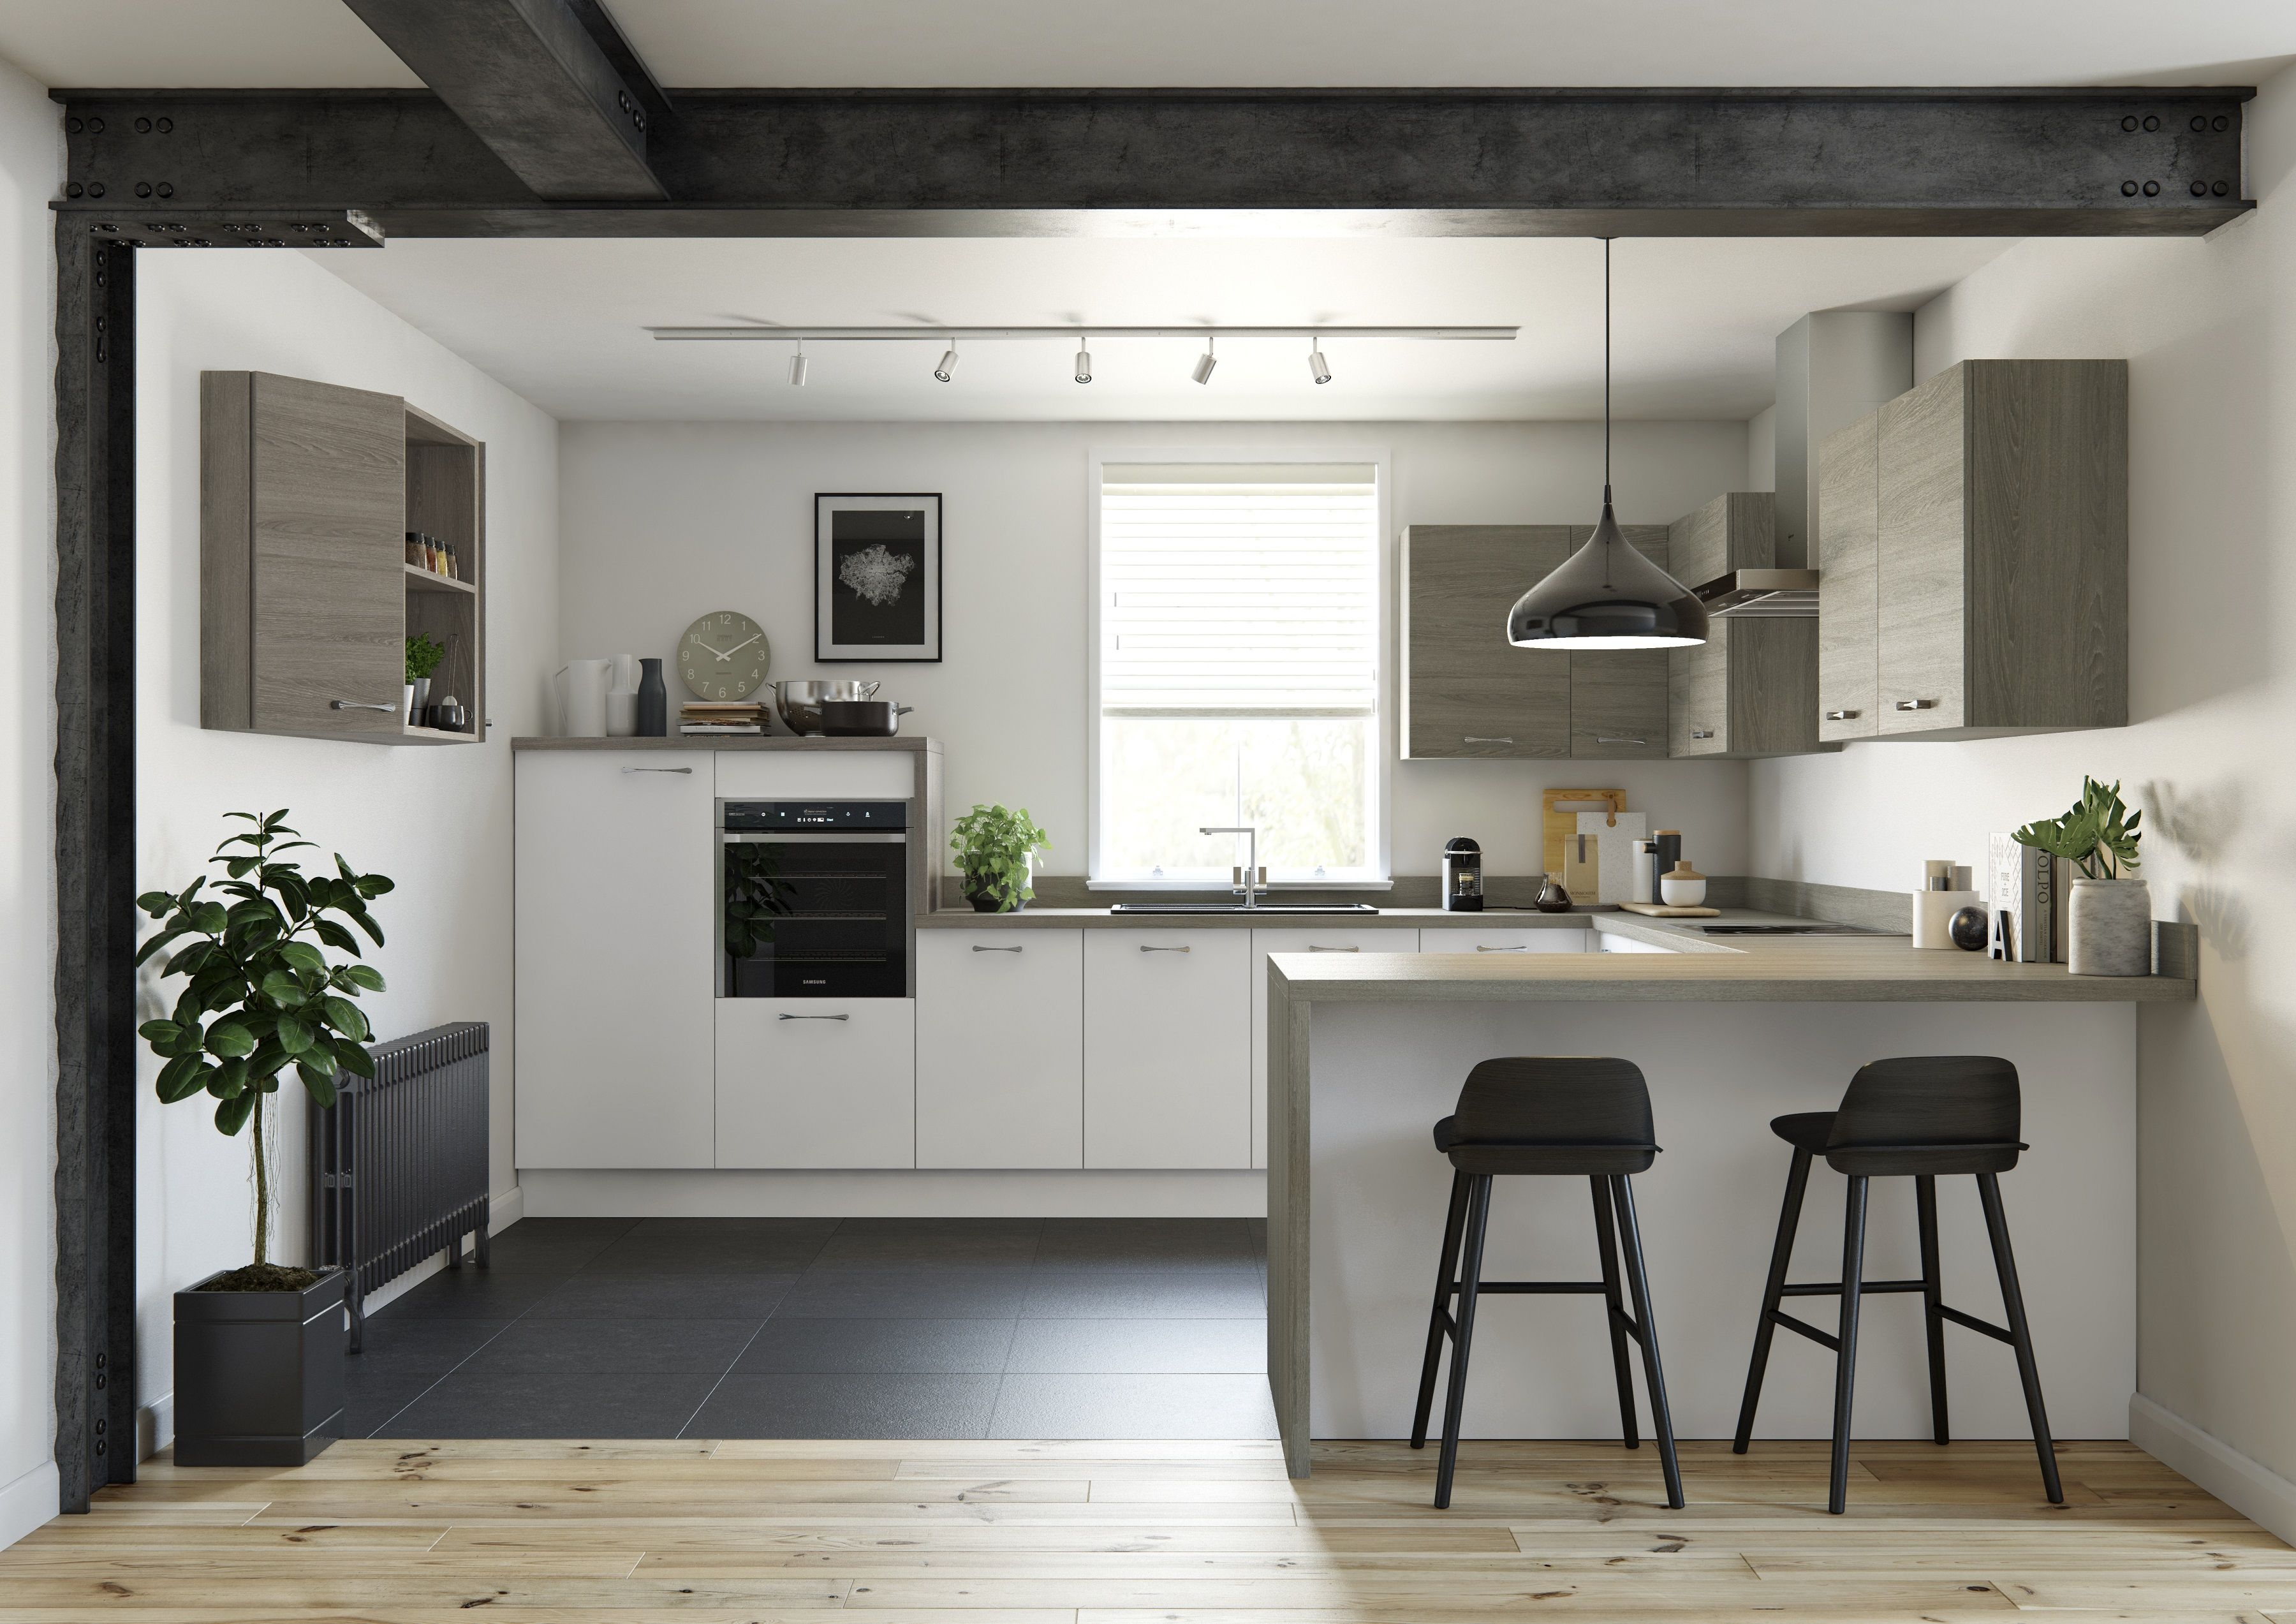 By keeping your kitchen very open and clean in design it